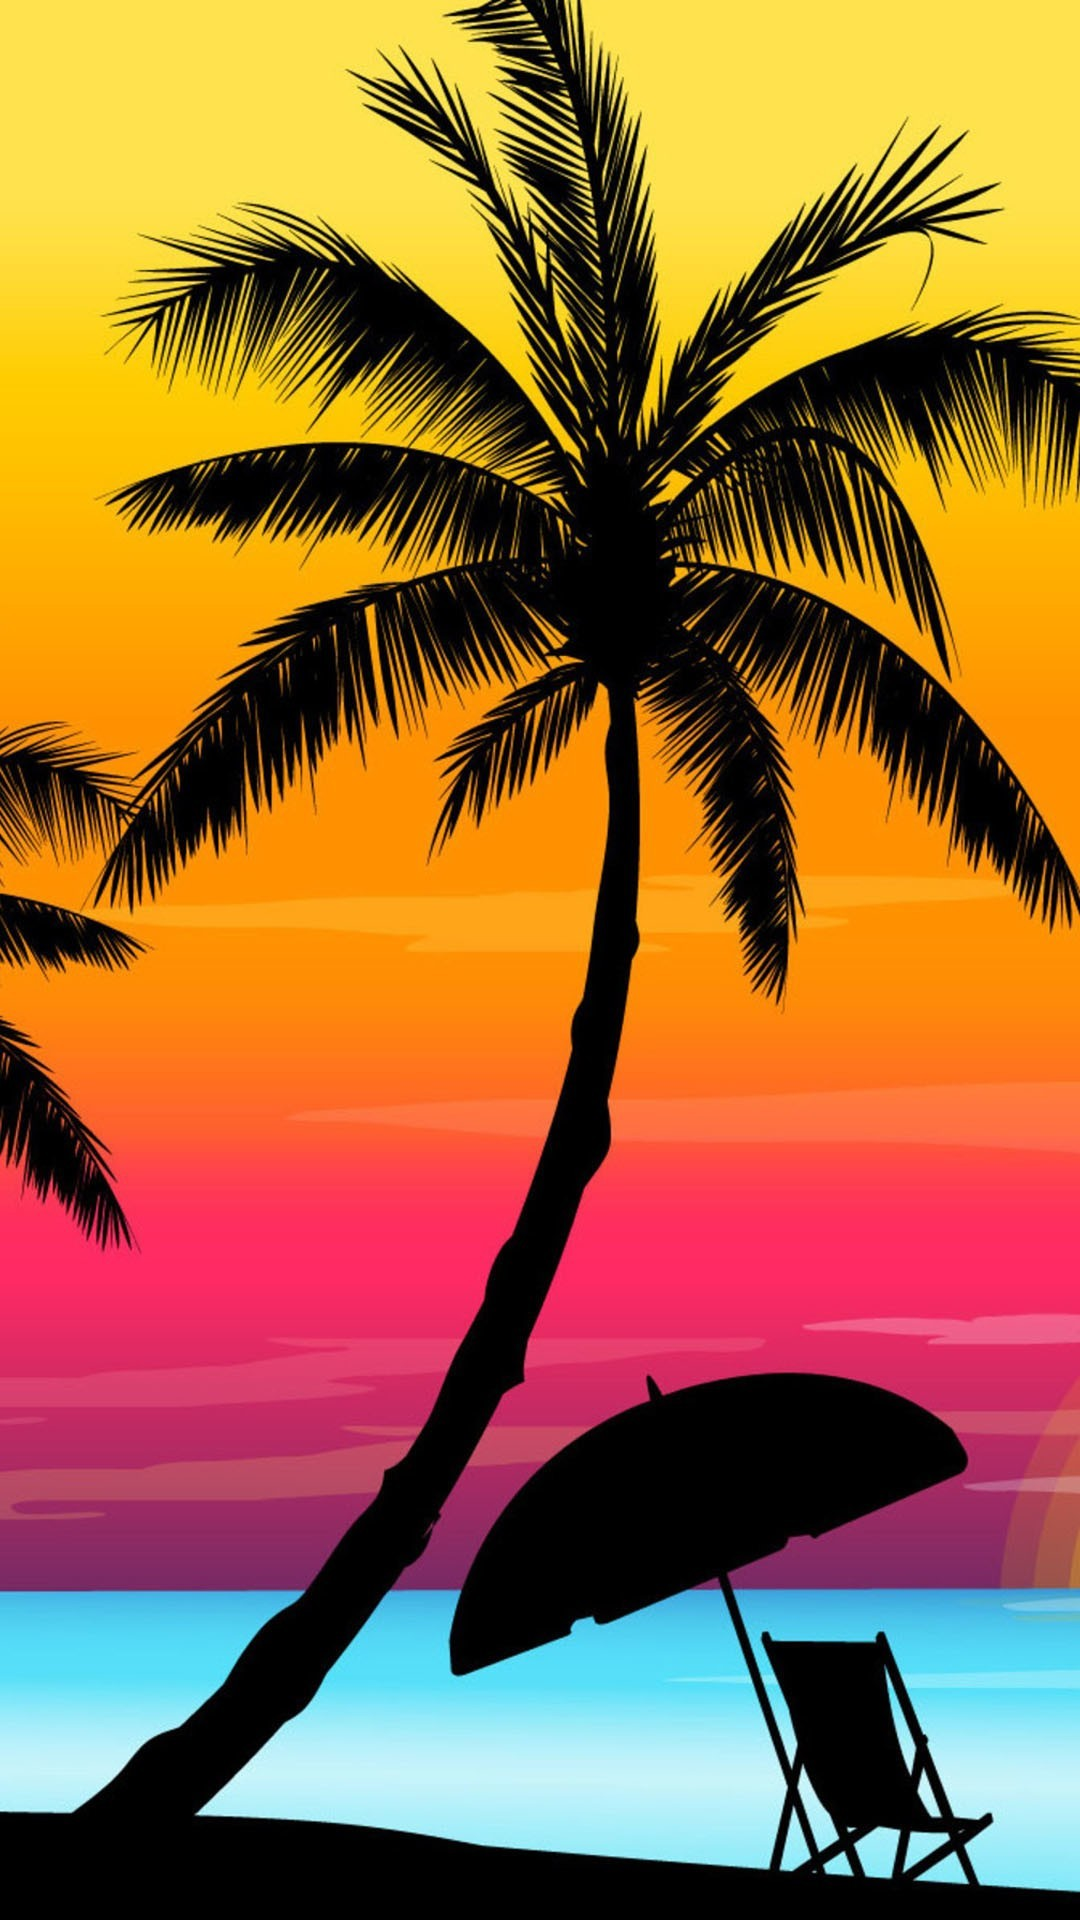 Iphone Summer Wallpaper - KoLPaPer - Awesome Free HD ...